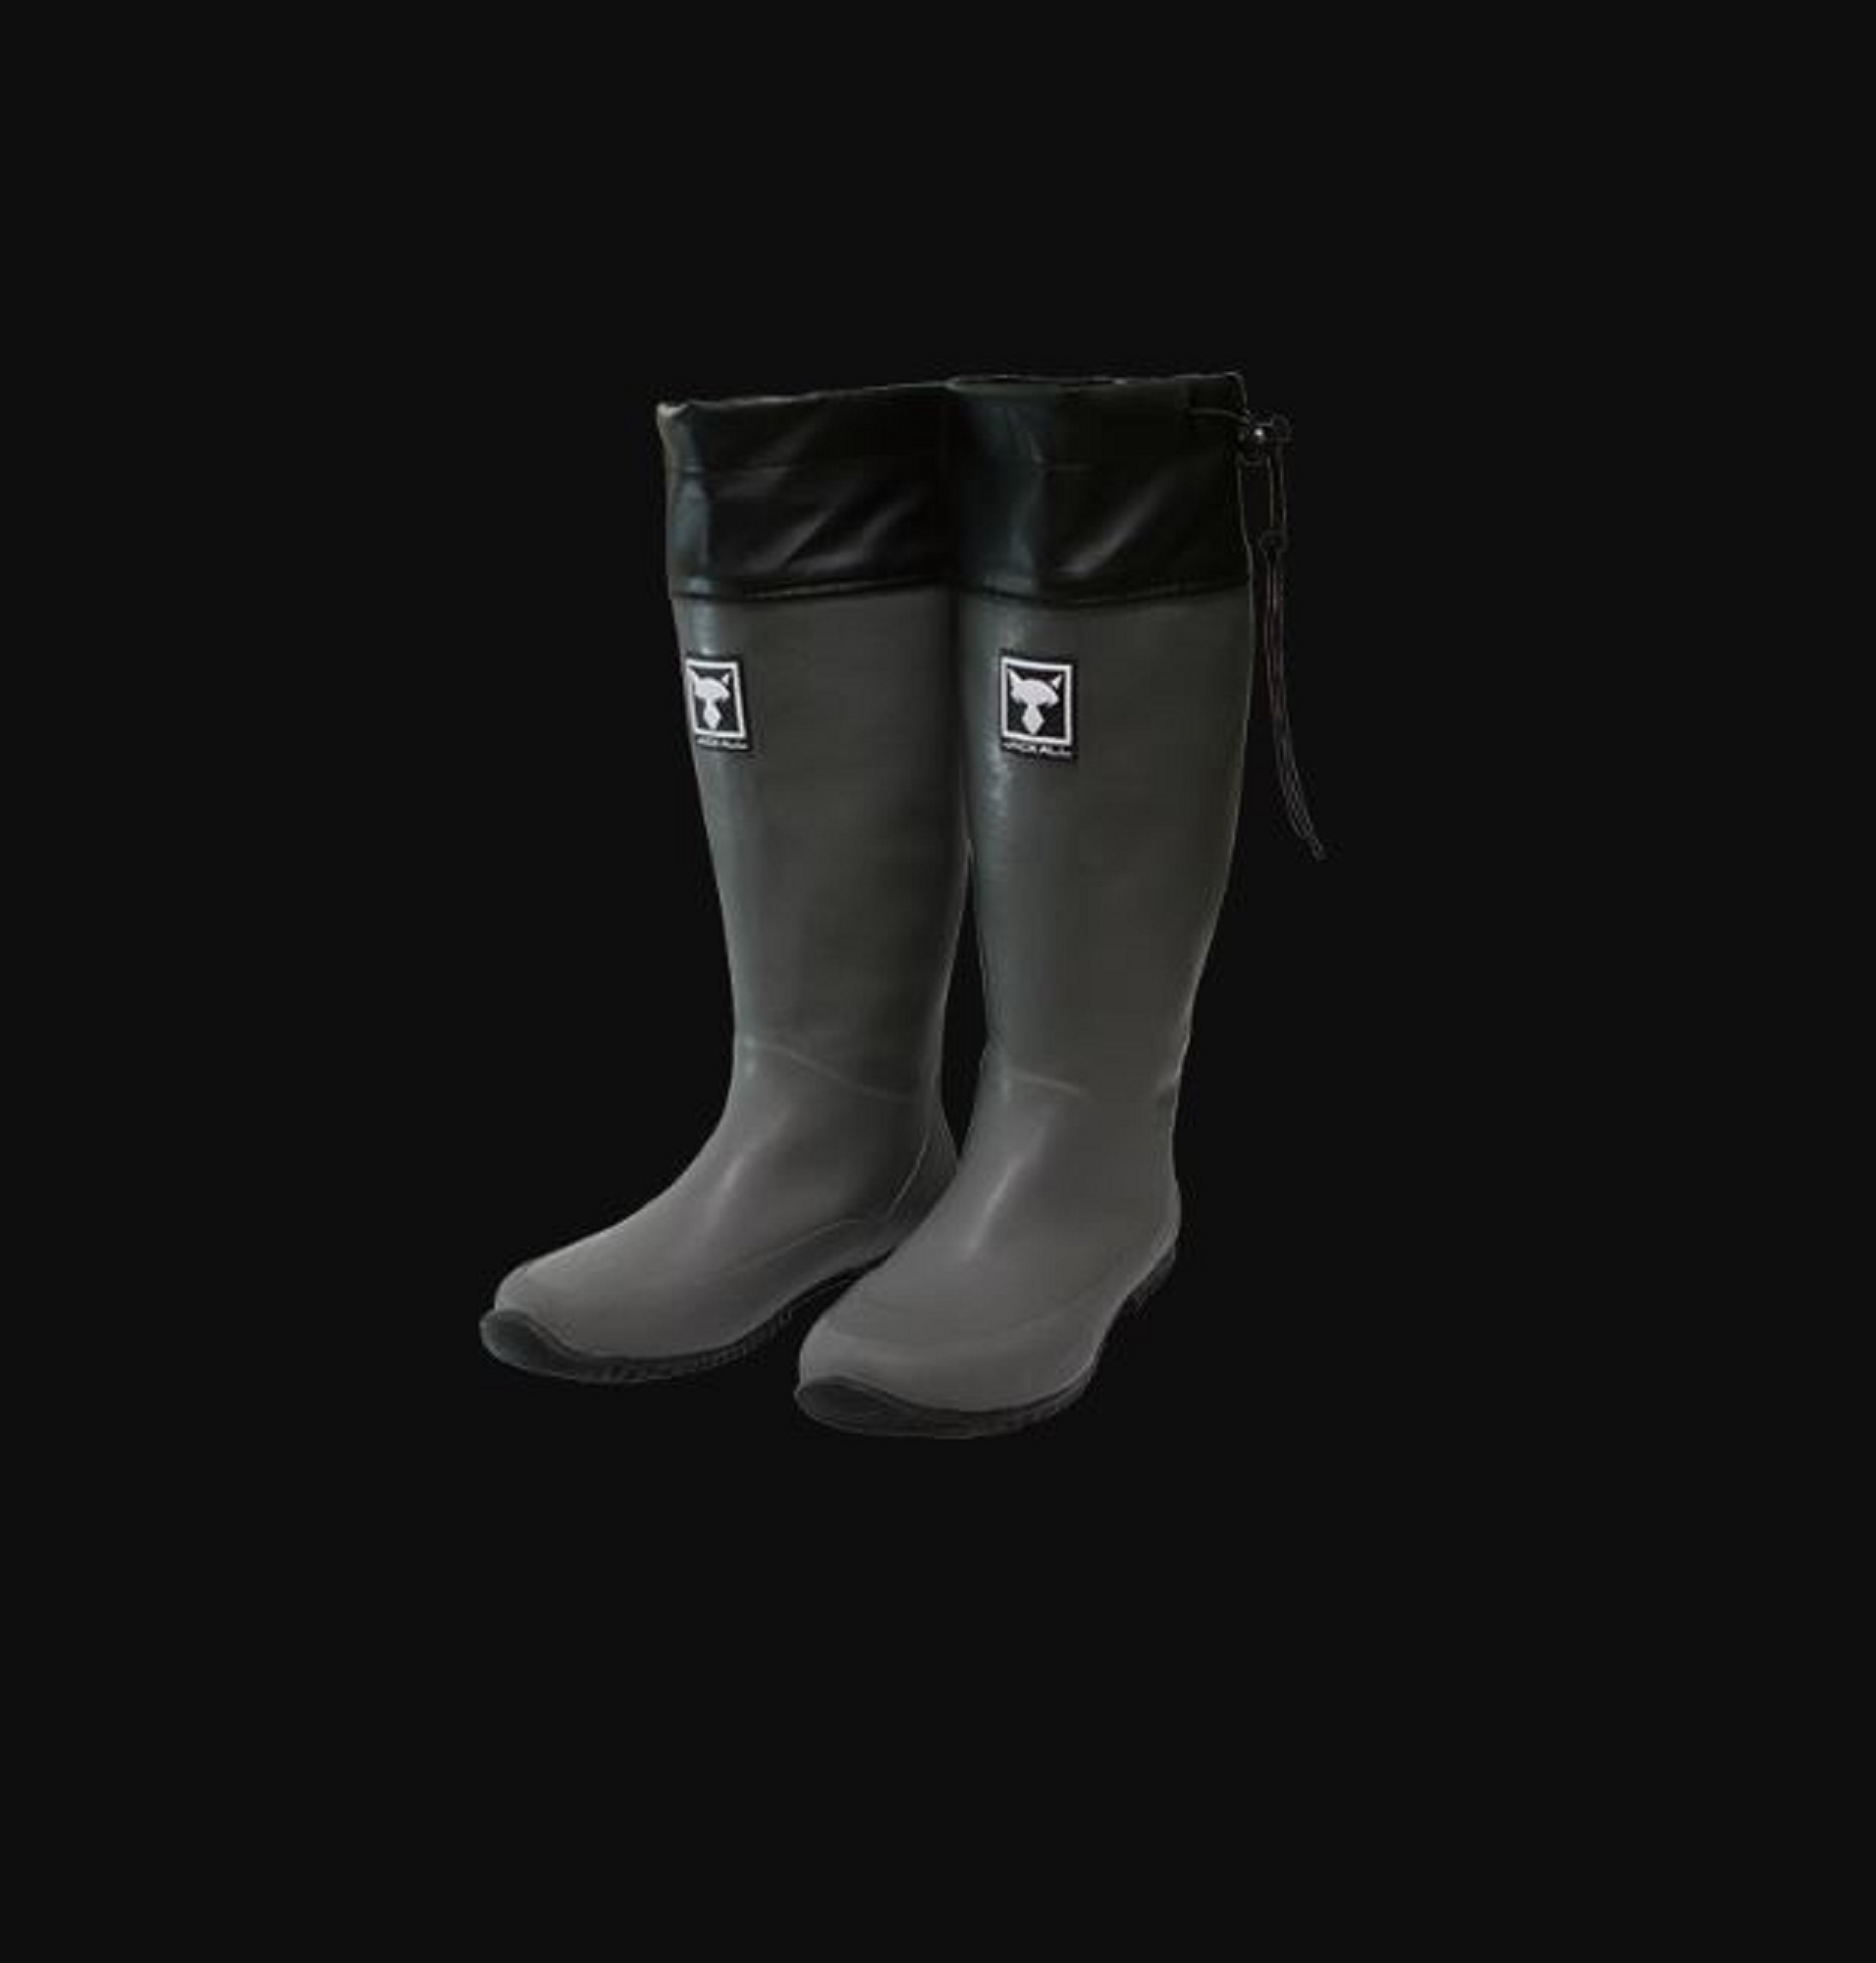 Jackall Packable Boots Foldable Gray Size XL 270-275 (2187)